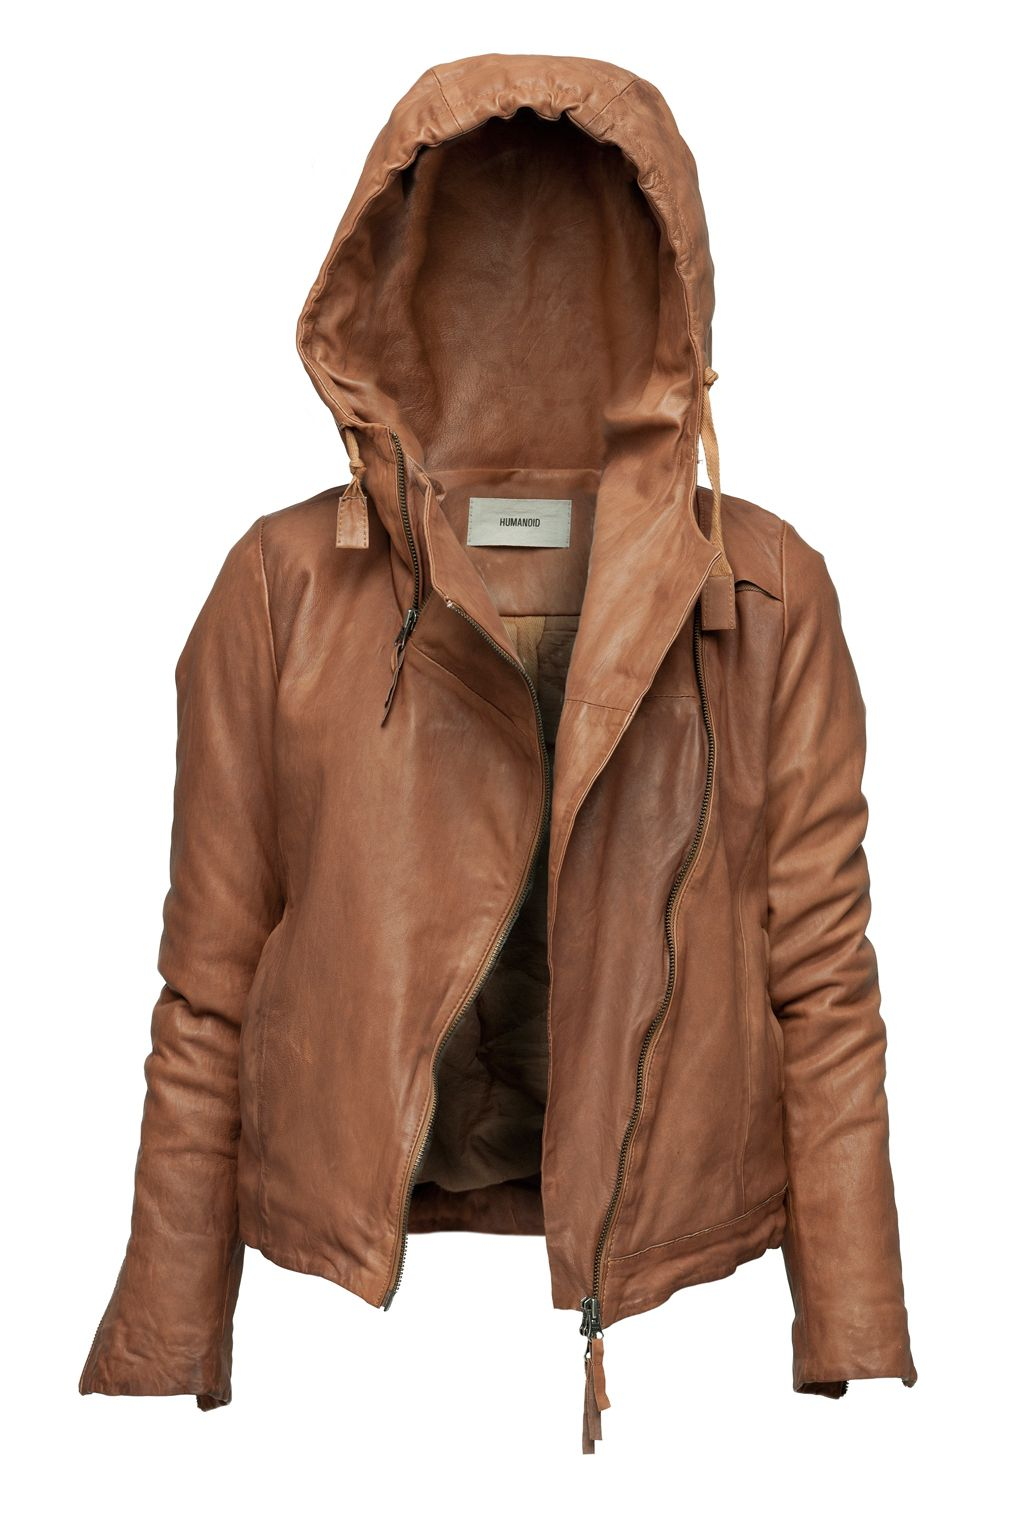 love if i could find a jacket like this in dark brown or black